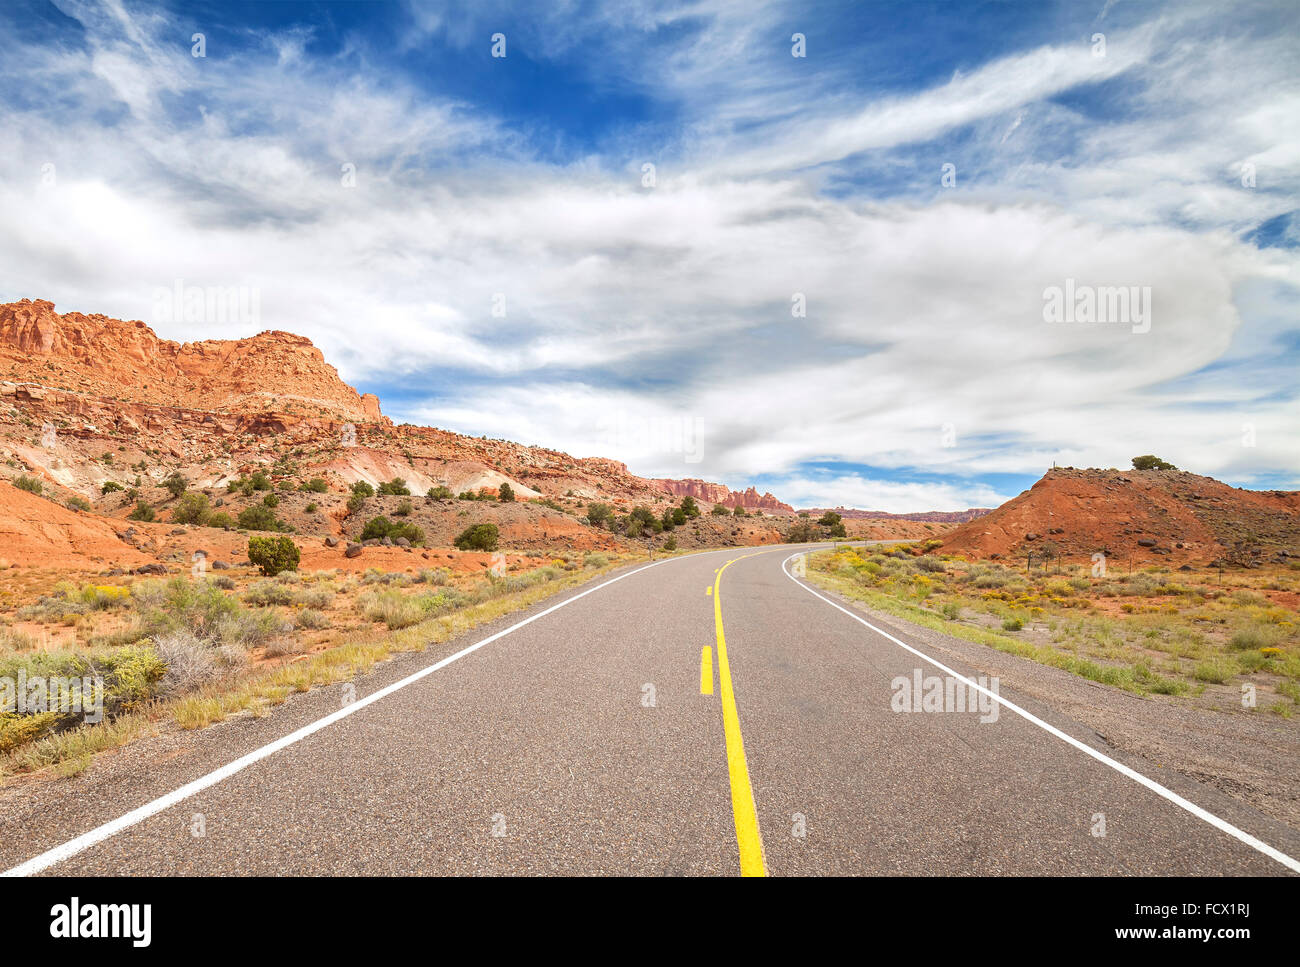 Picture of a scenic desert road, USA. - Stock Image